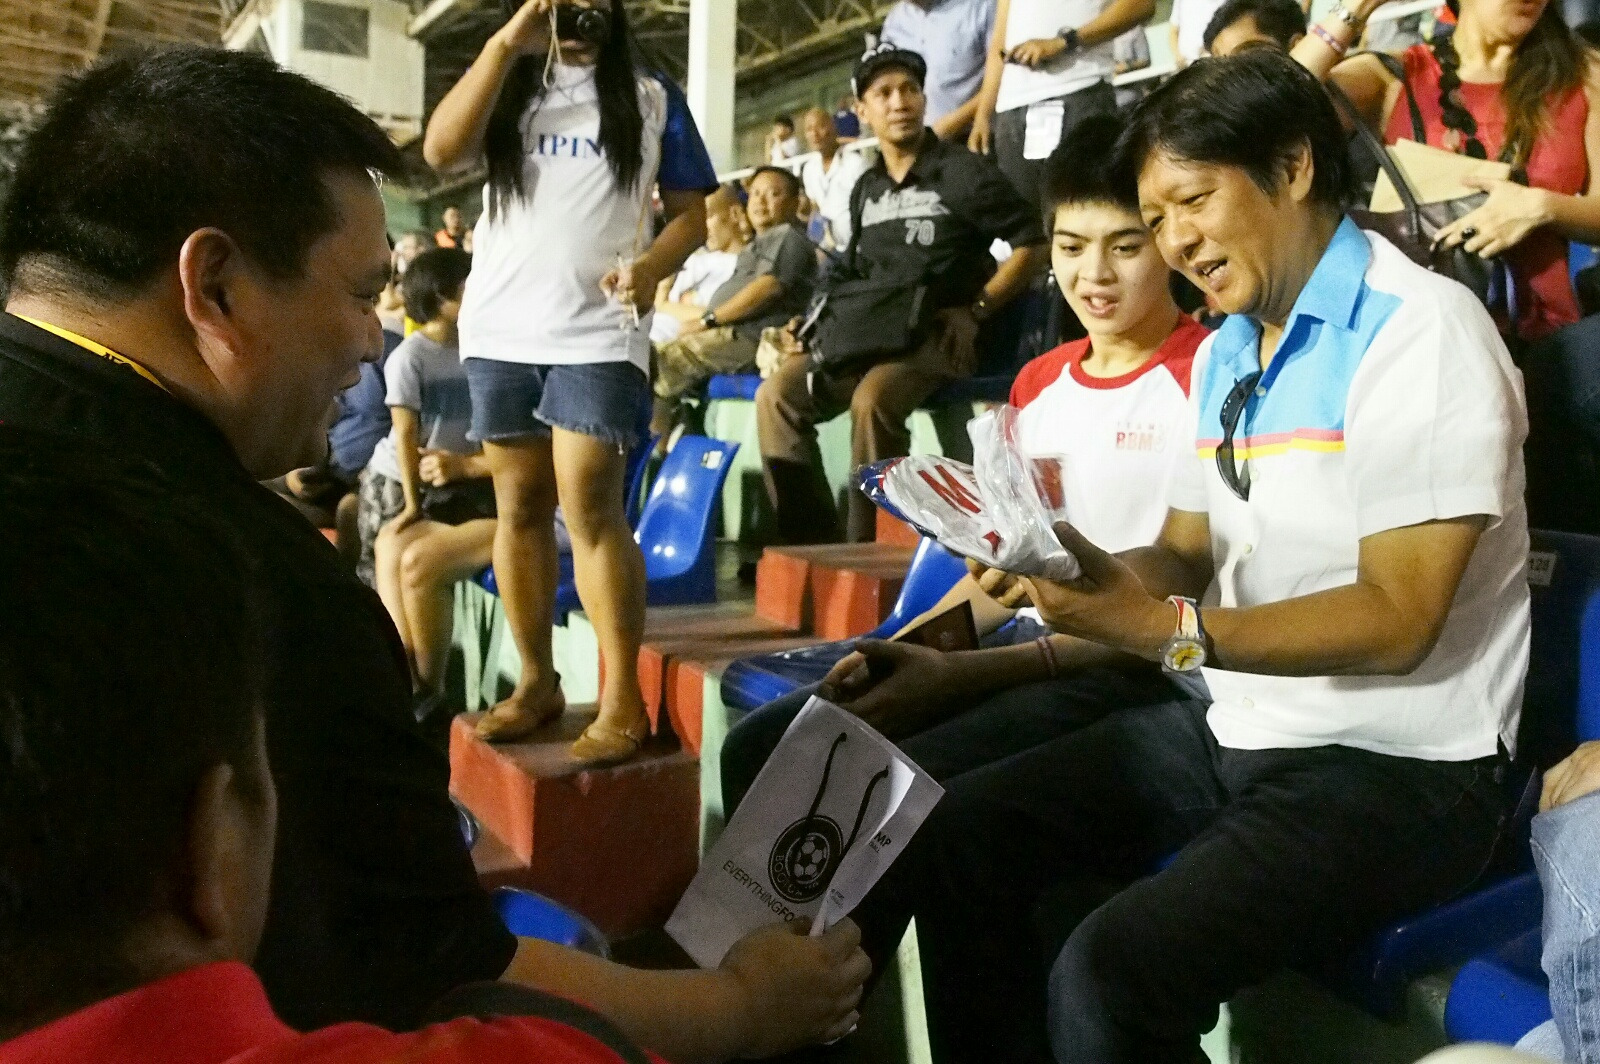 AZKALS' NO. 10. Vice presidential candidate Senator Ferdinand 'Bongbong' Marcos Jr receives the No. 10 Azkals jersey from team manager Dan Palami during Tuesday night's game between the Philippines and North Korea. Photo from the Office of Senator Bongbong Marcos